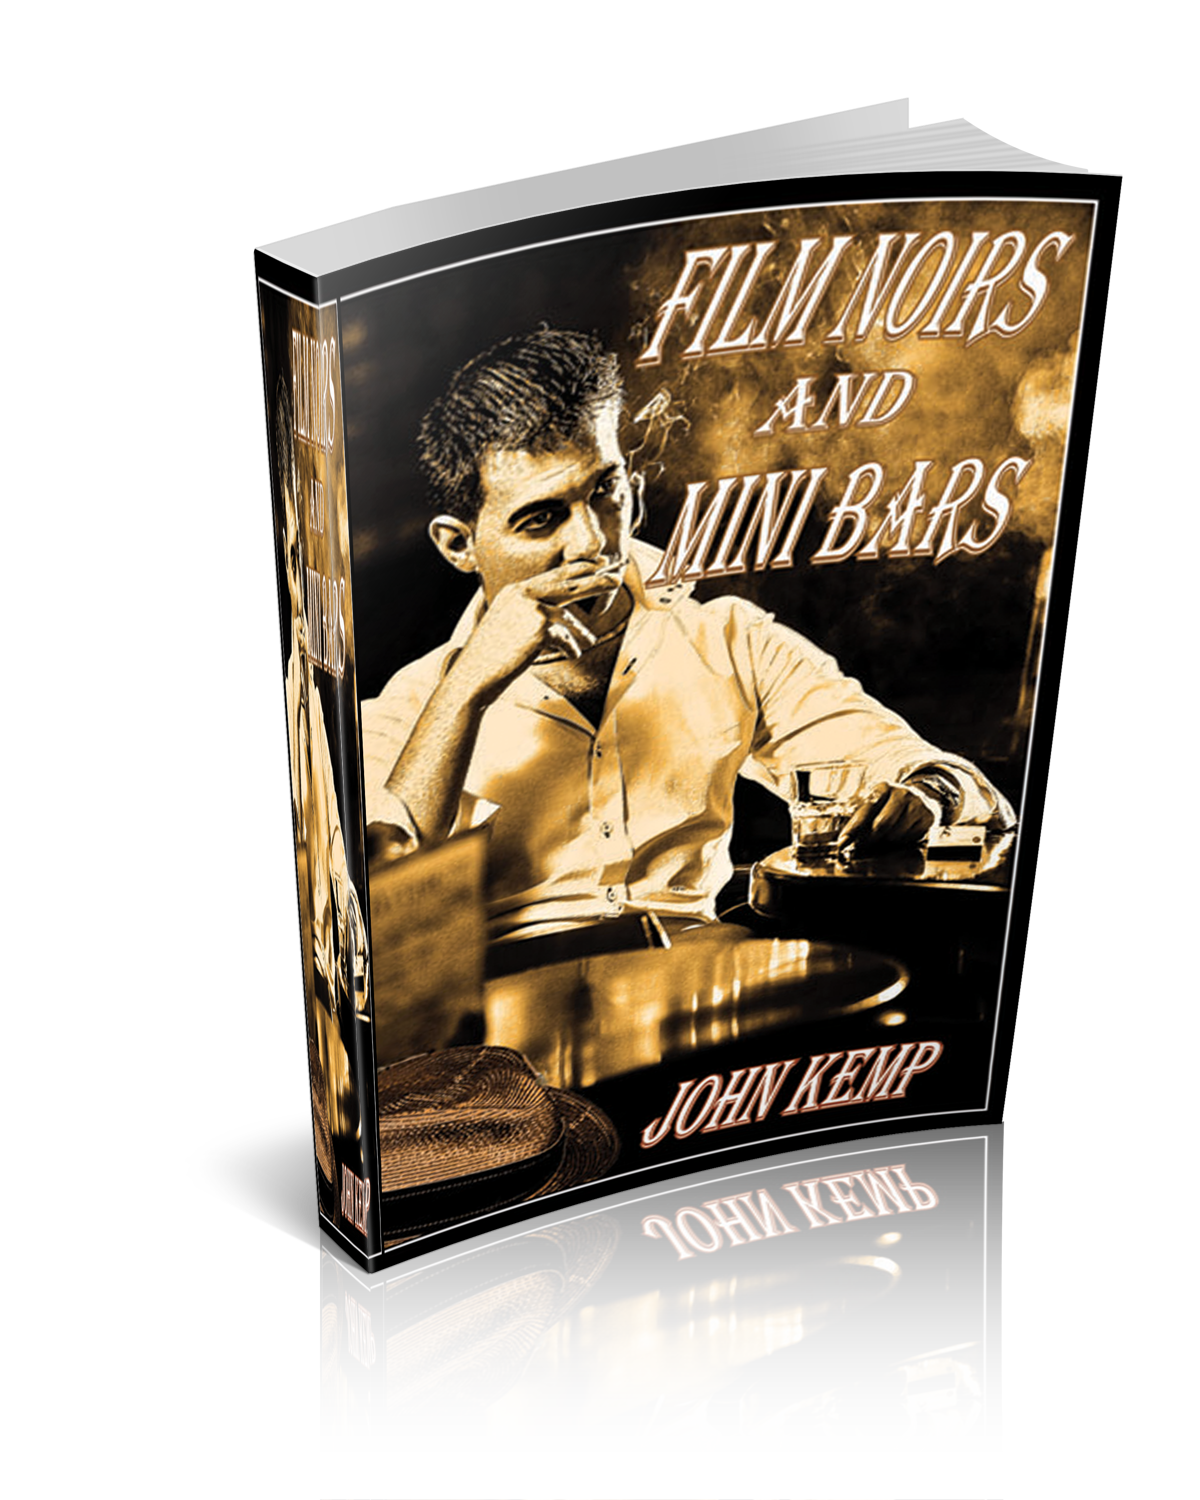 3D Film Noirs cover image